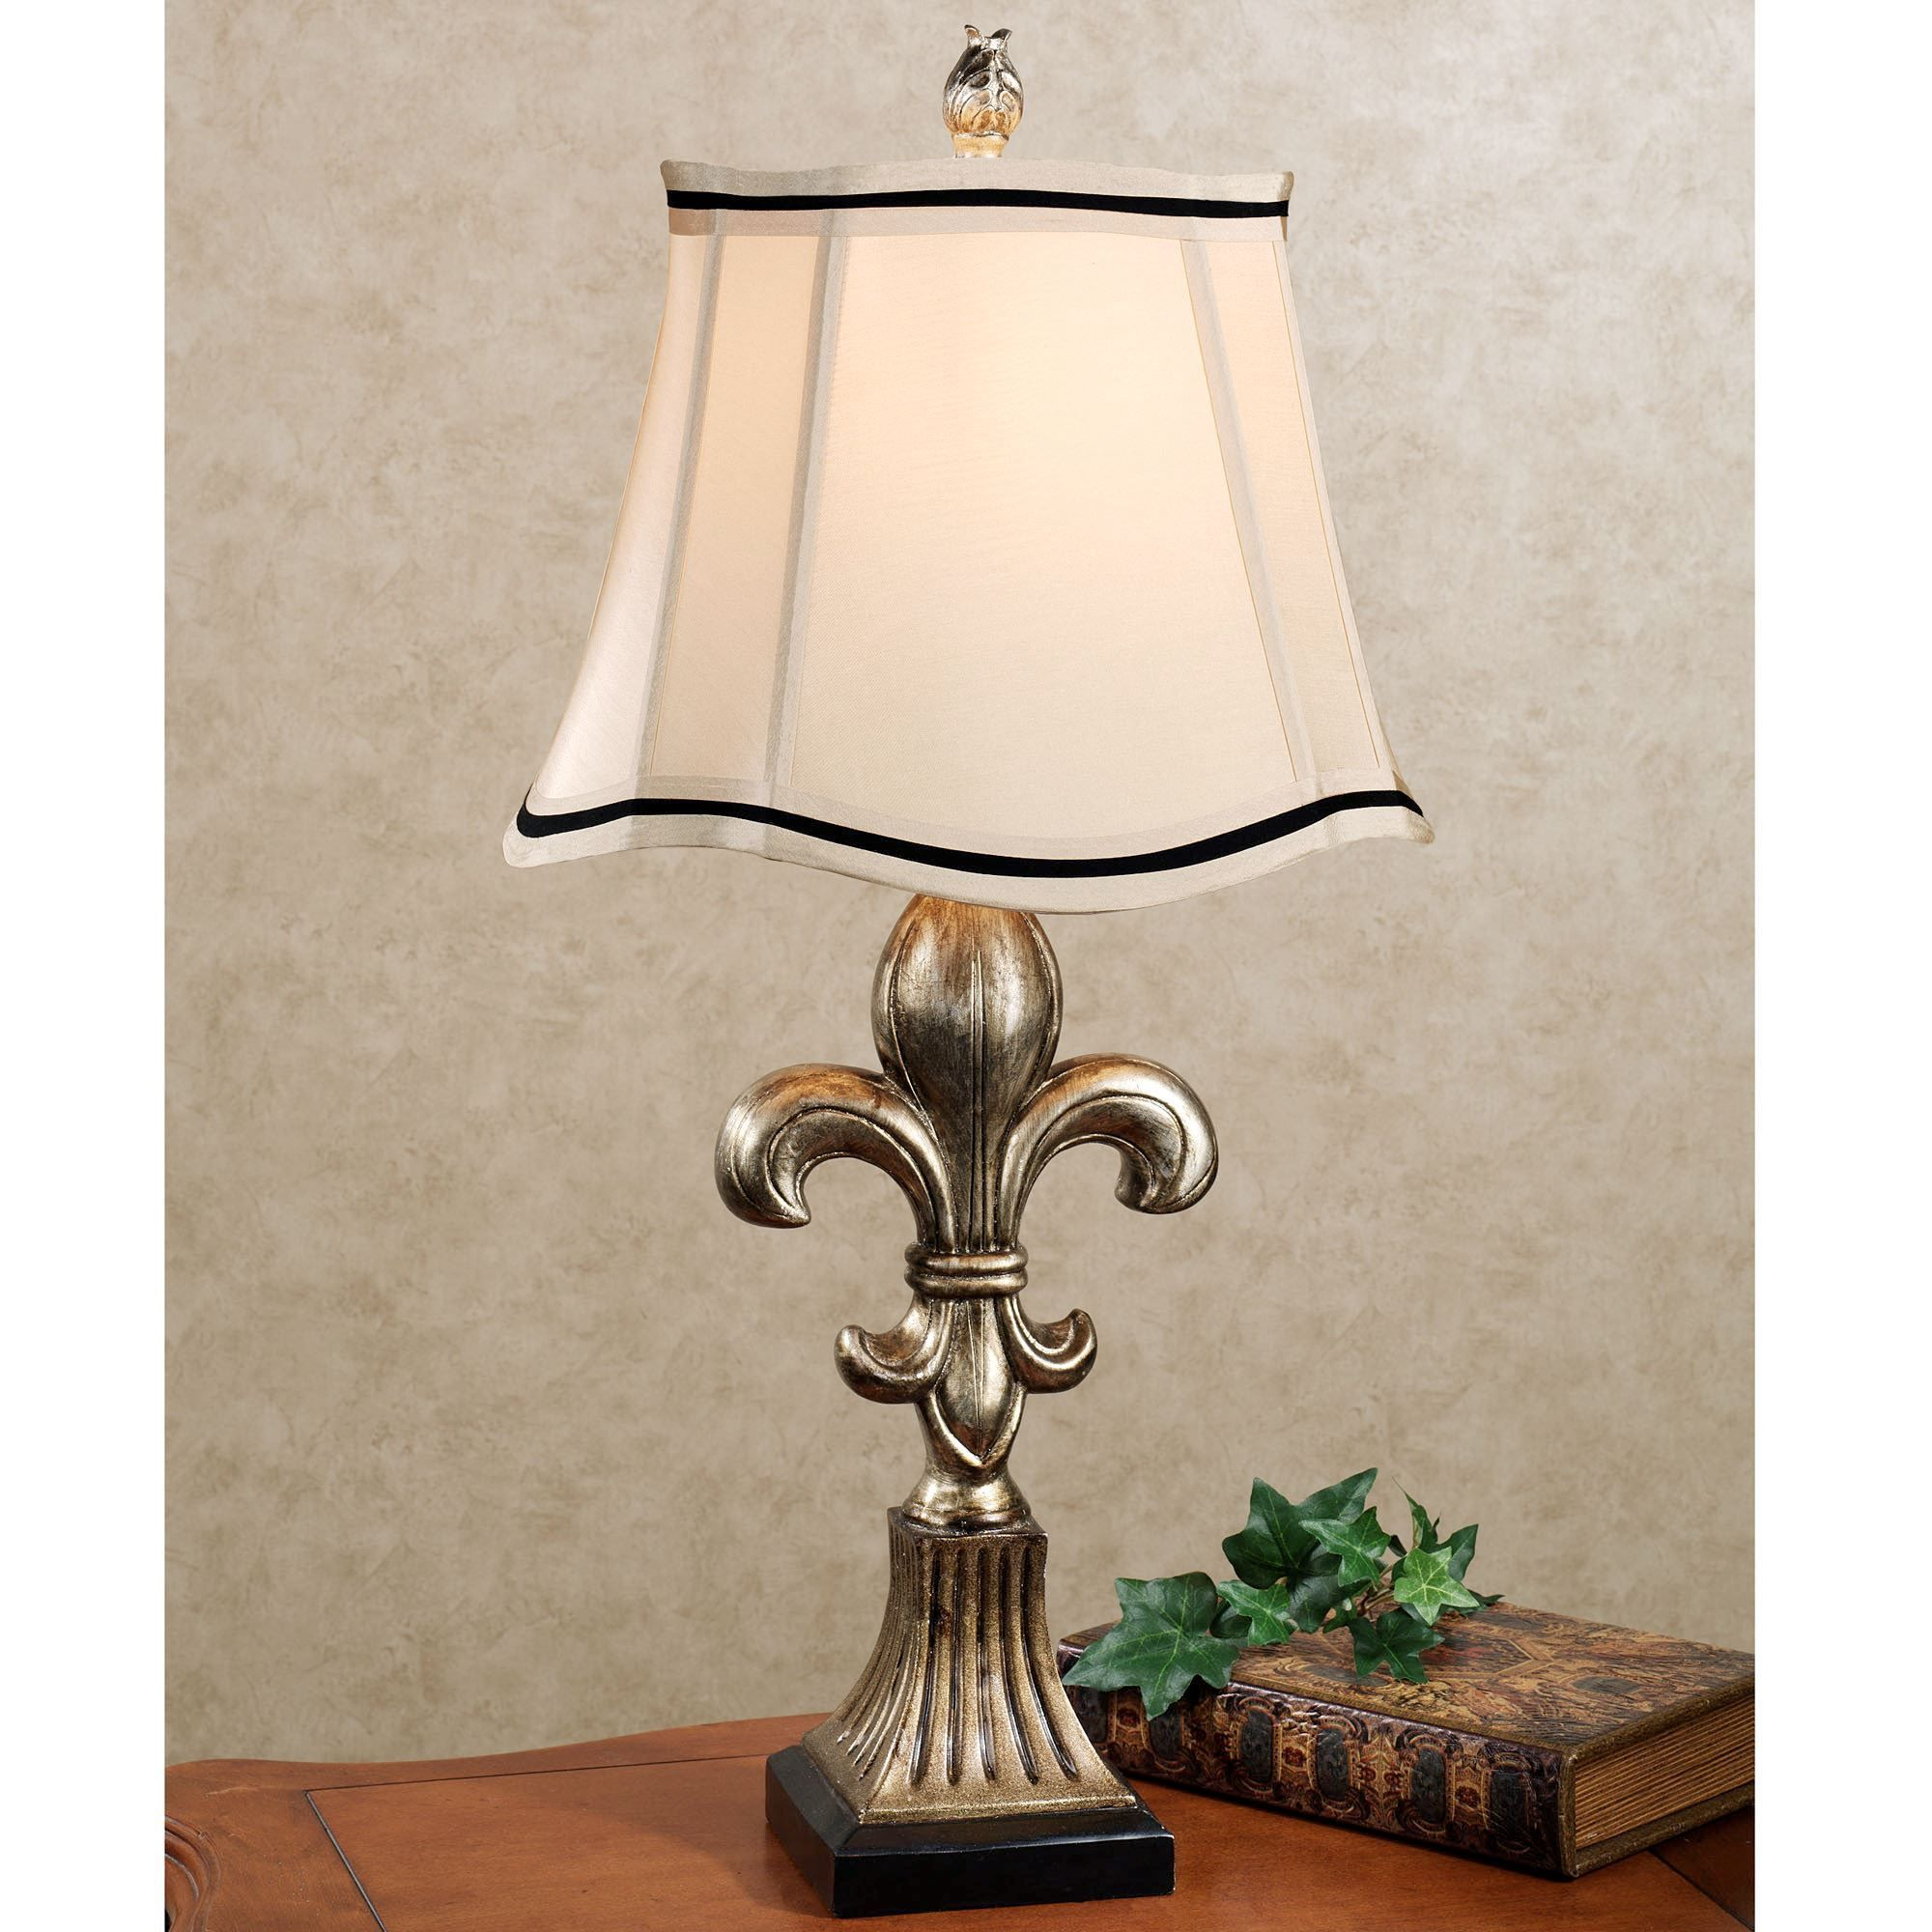 Carsten Table Lamp Carsten Fleur Table Lamp